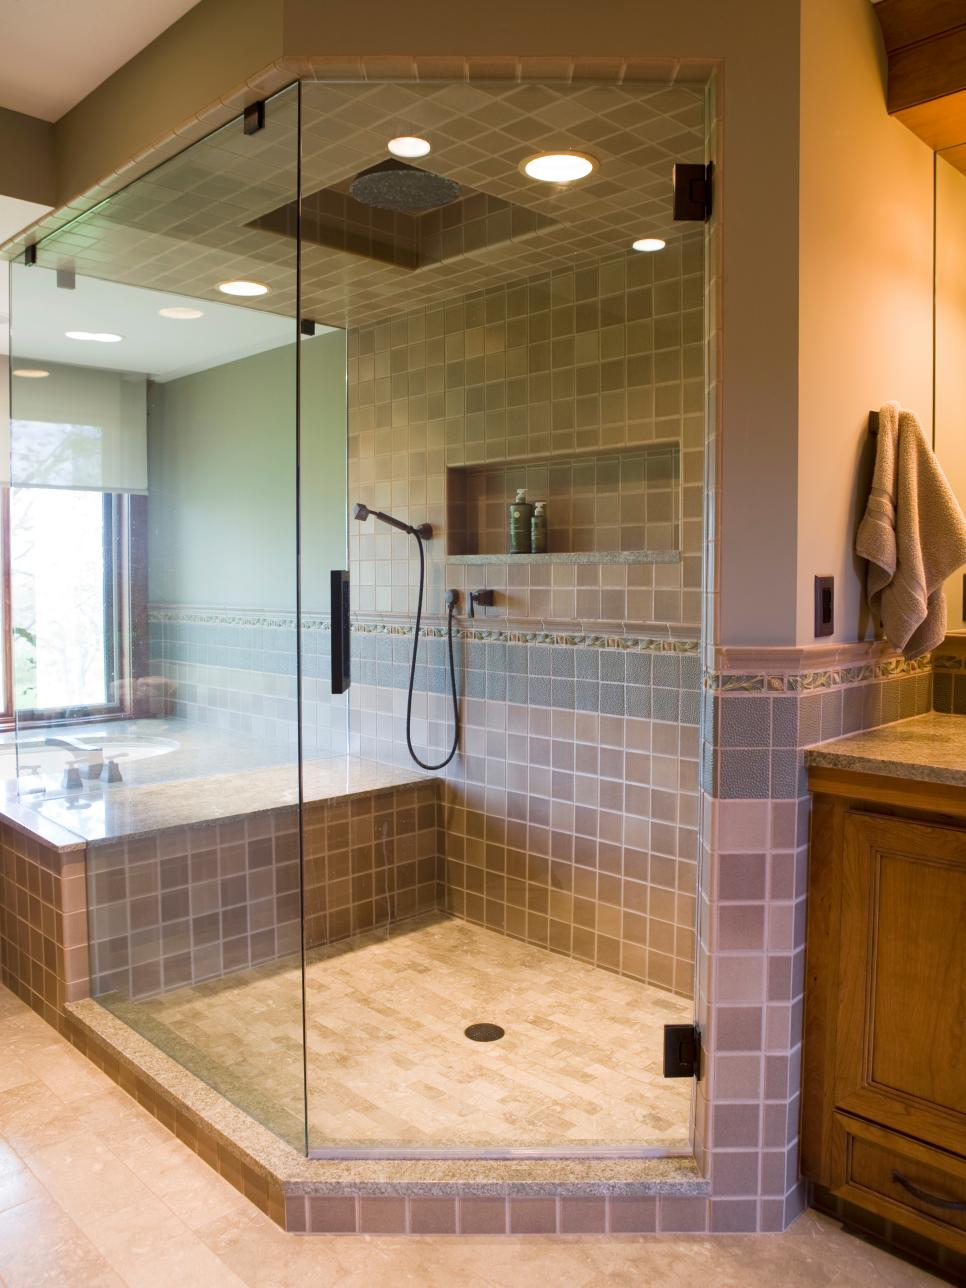 24 glass shower bathroom designs decorating ideas for Custom bathroom ideas